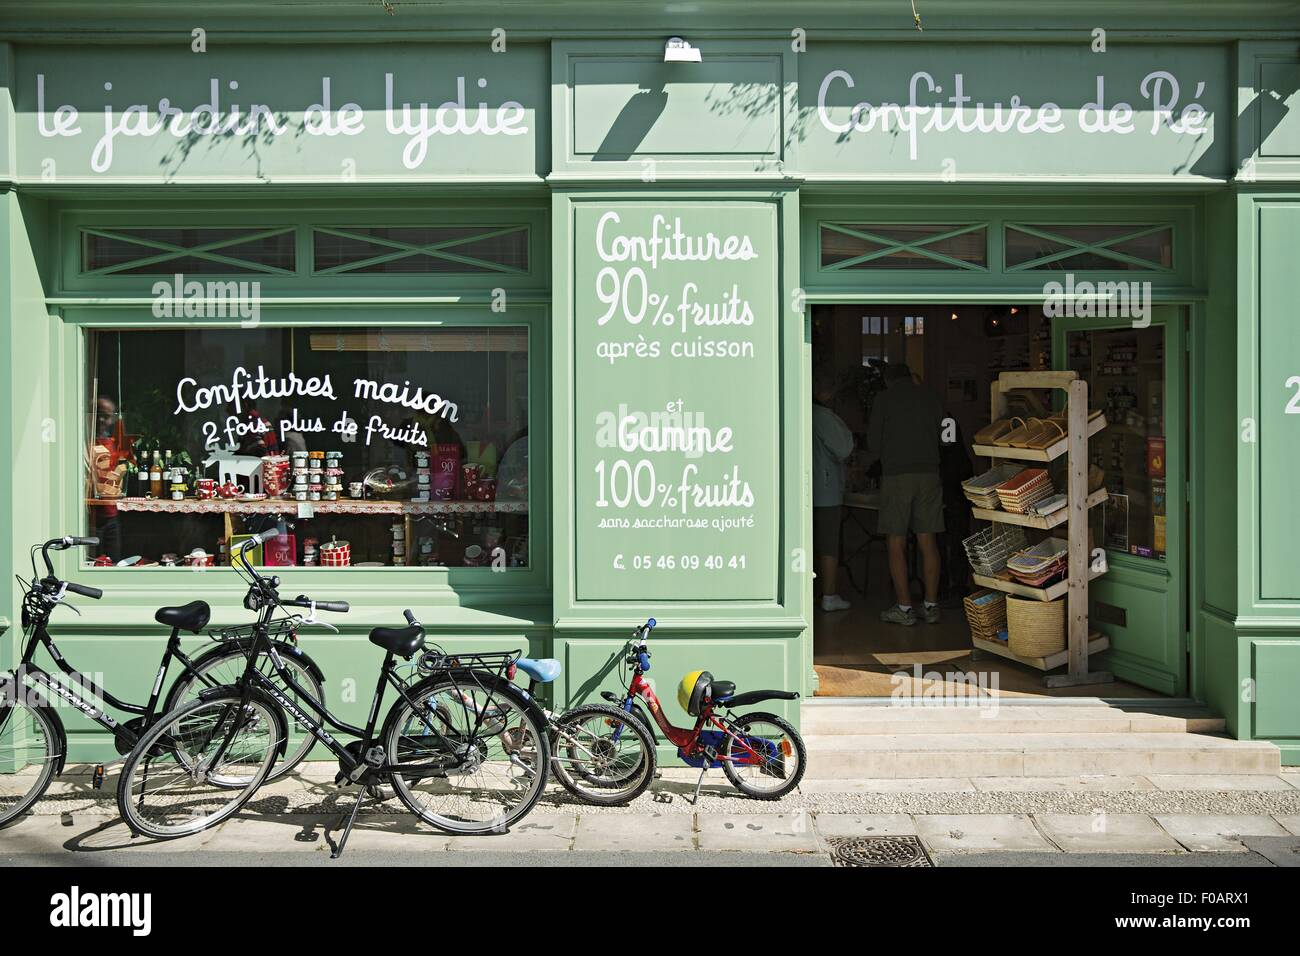 Bicycle in front of confiture de Re shop, Le Bois-Plage-en-Re, Ile de Re, France - Stock Image